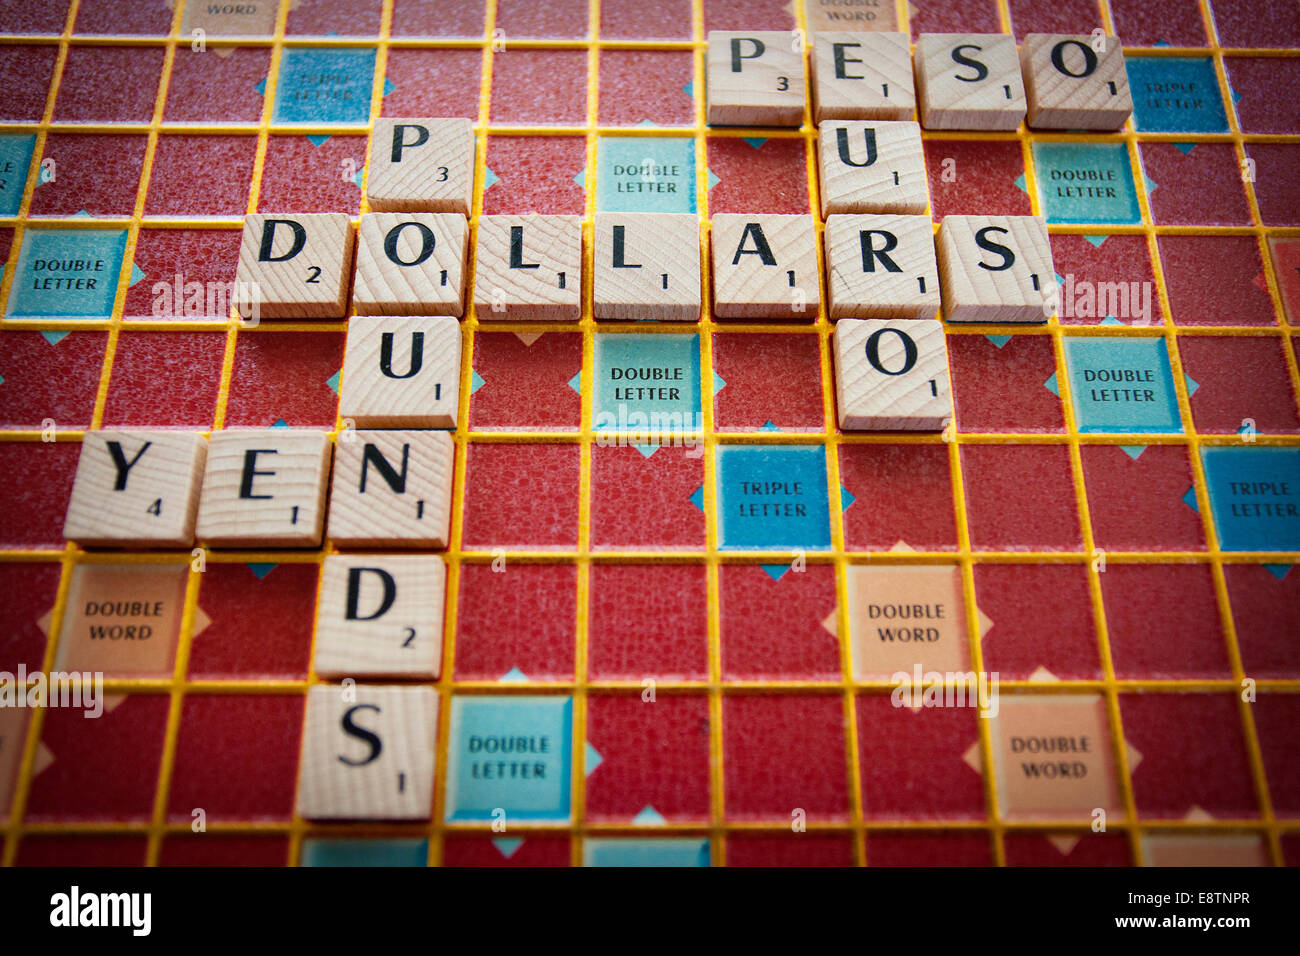 Various world currencies spelled out on a Scrabble board - Stock Image